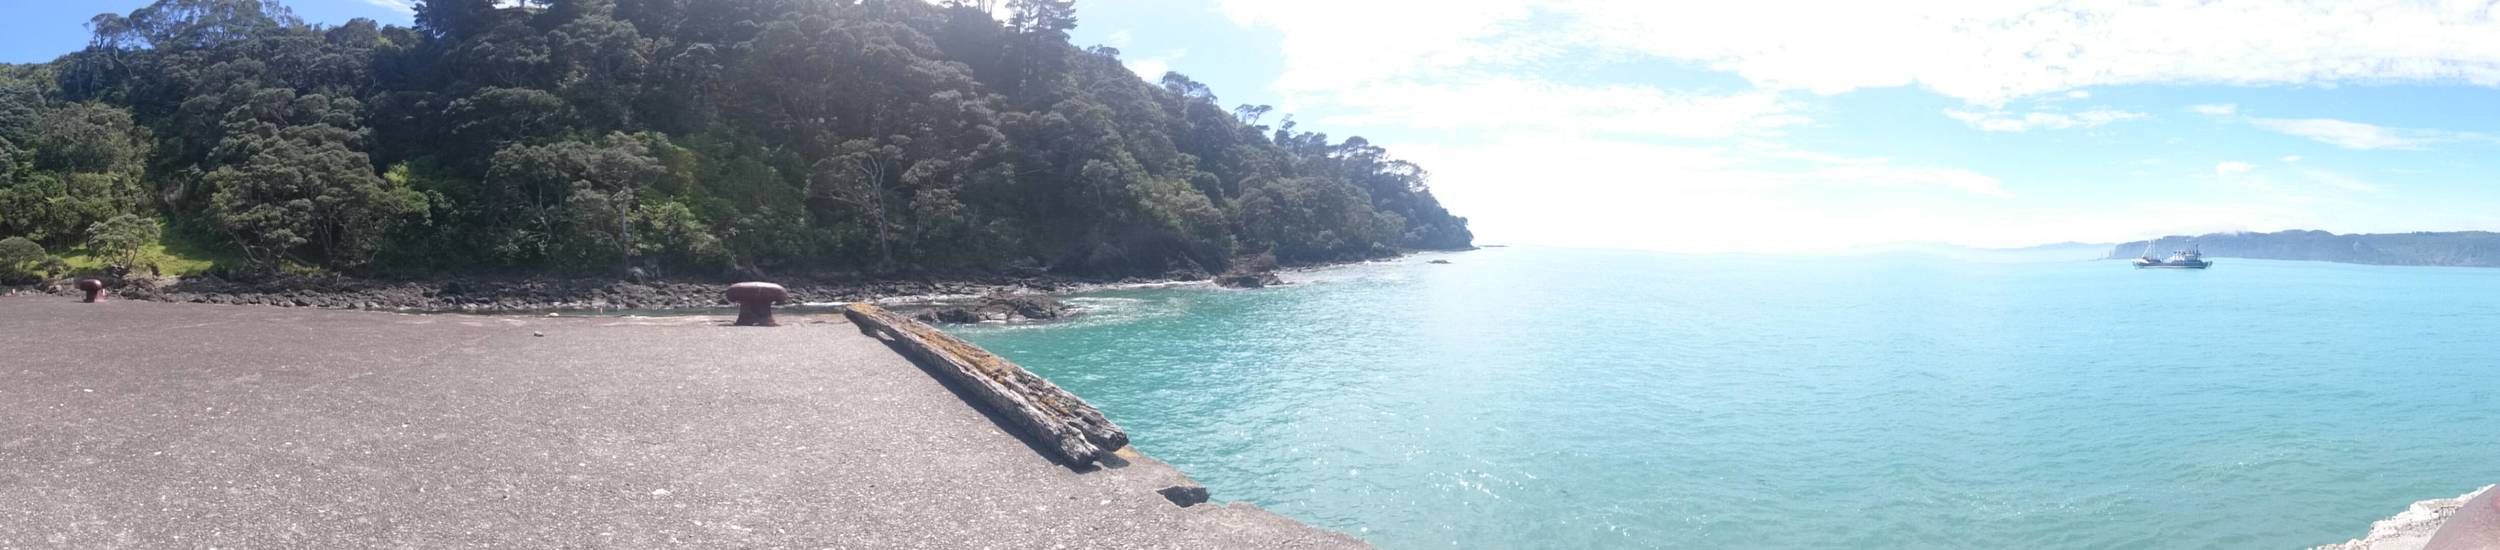 View from VHF contact point at wharf end of Hicks Bay